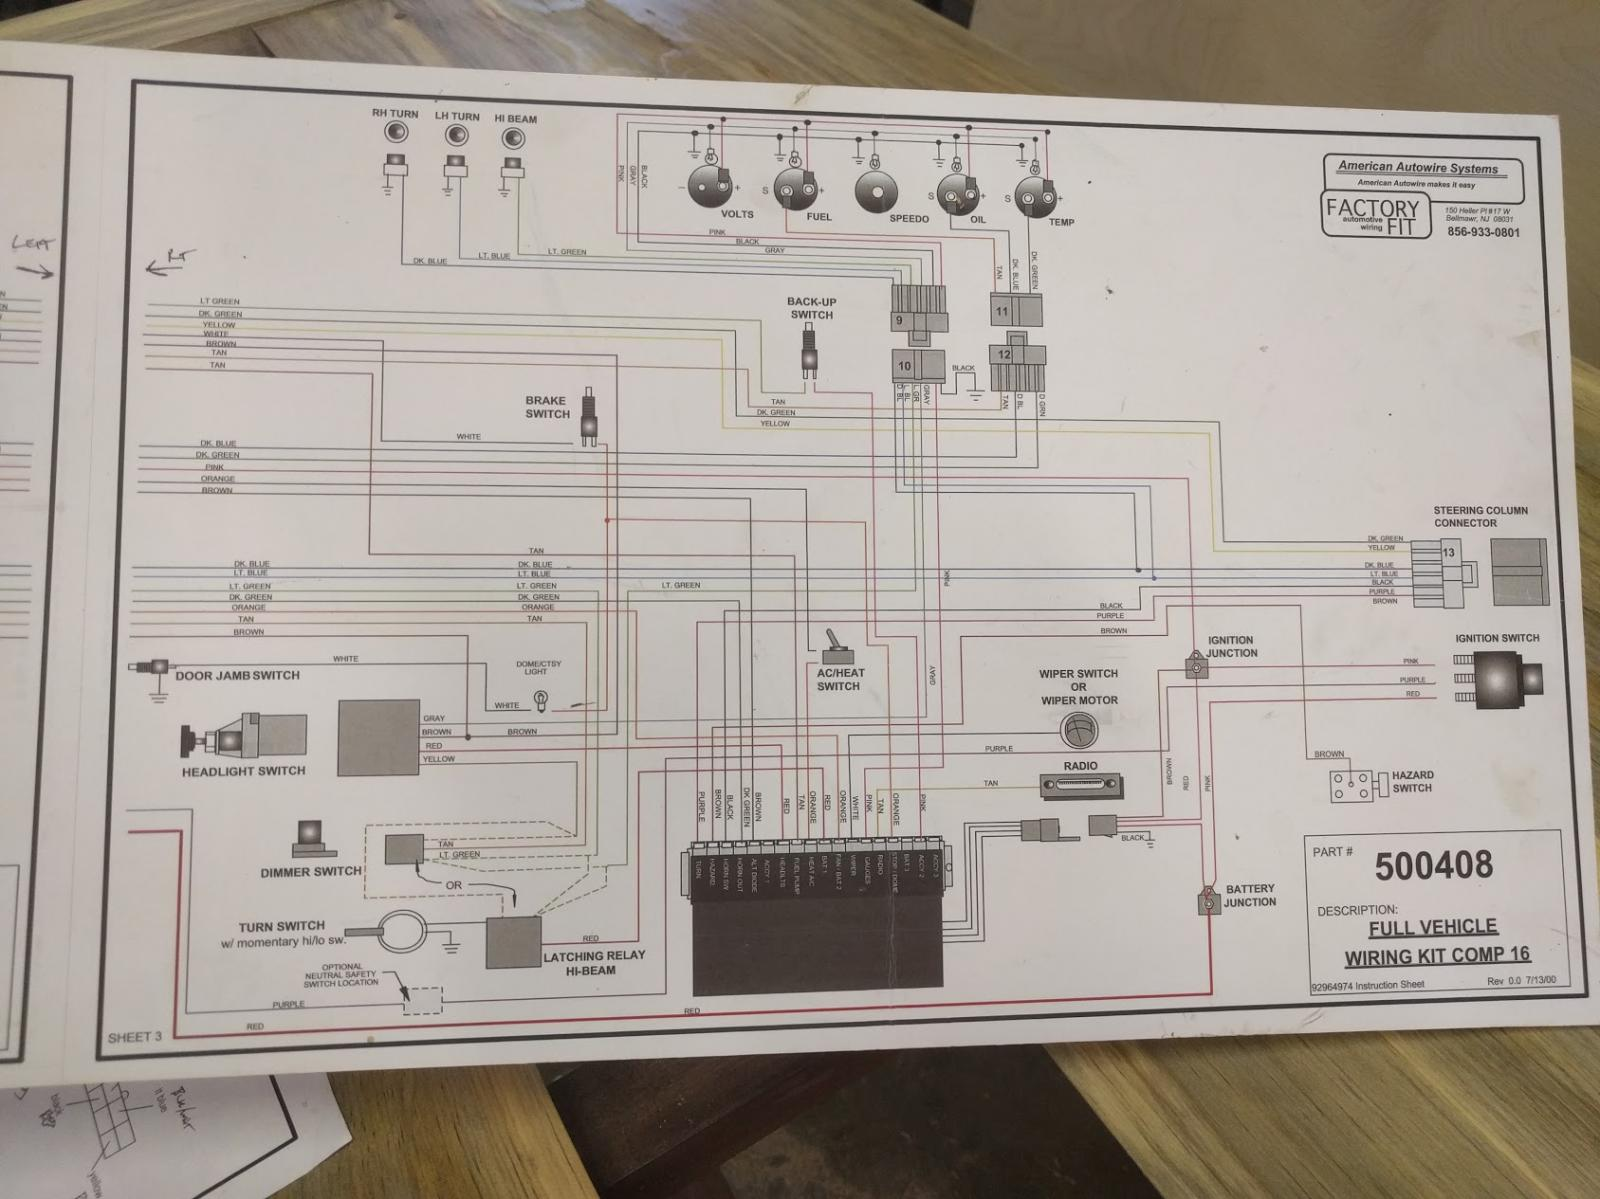 Amazing American Autowire Diagrams Sketch - Everything You Need to ...